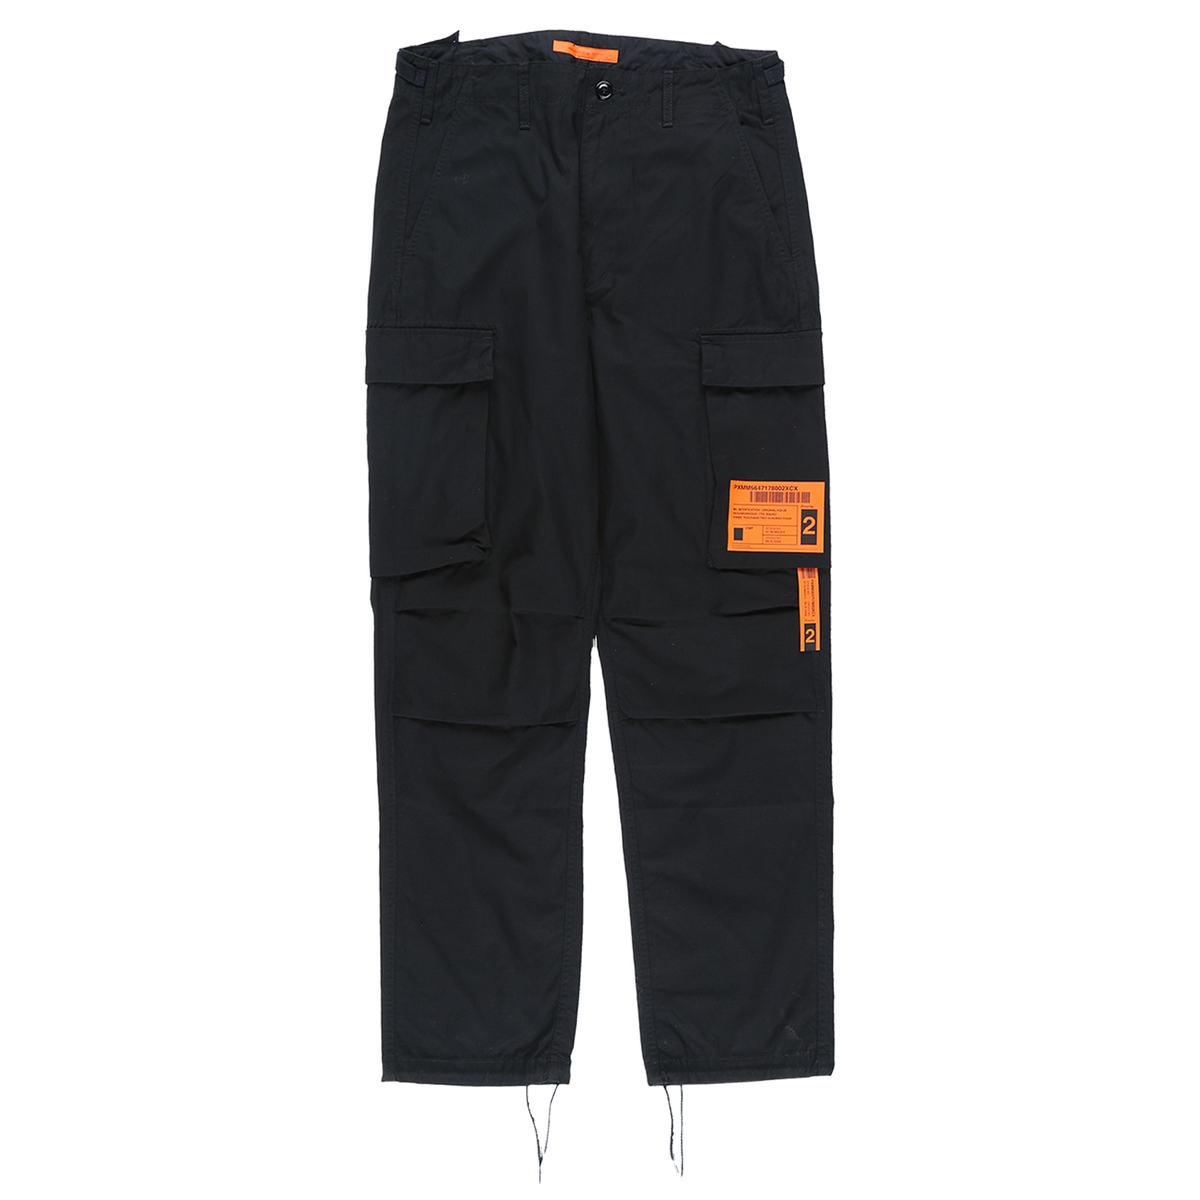 Neighborhood MIL BDU SC Cargo Pants  - XHIBITION